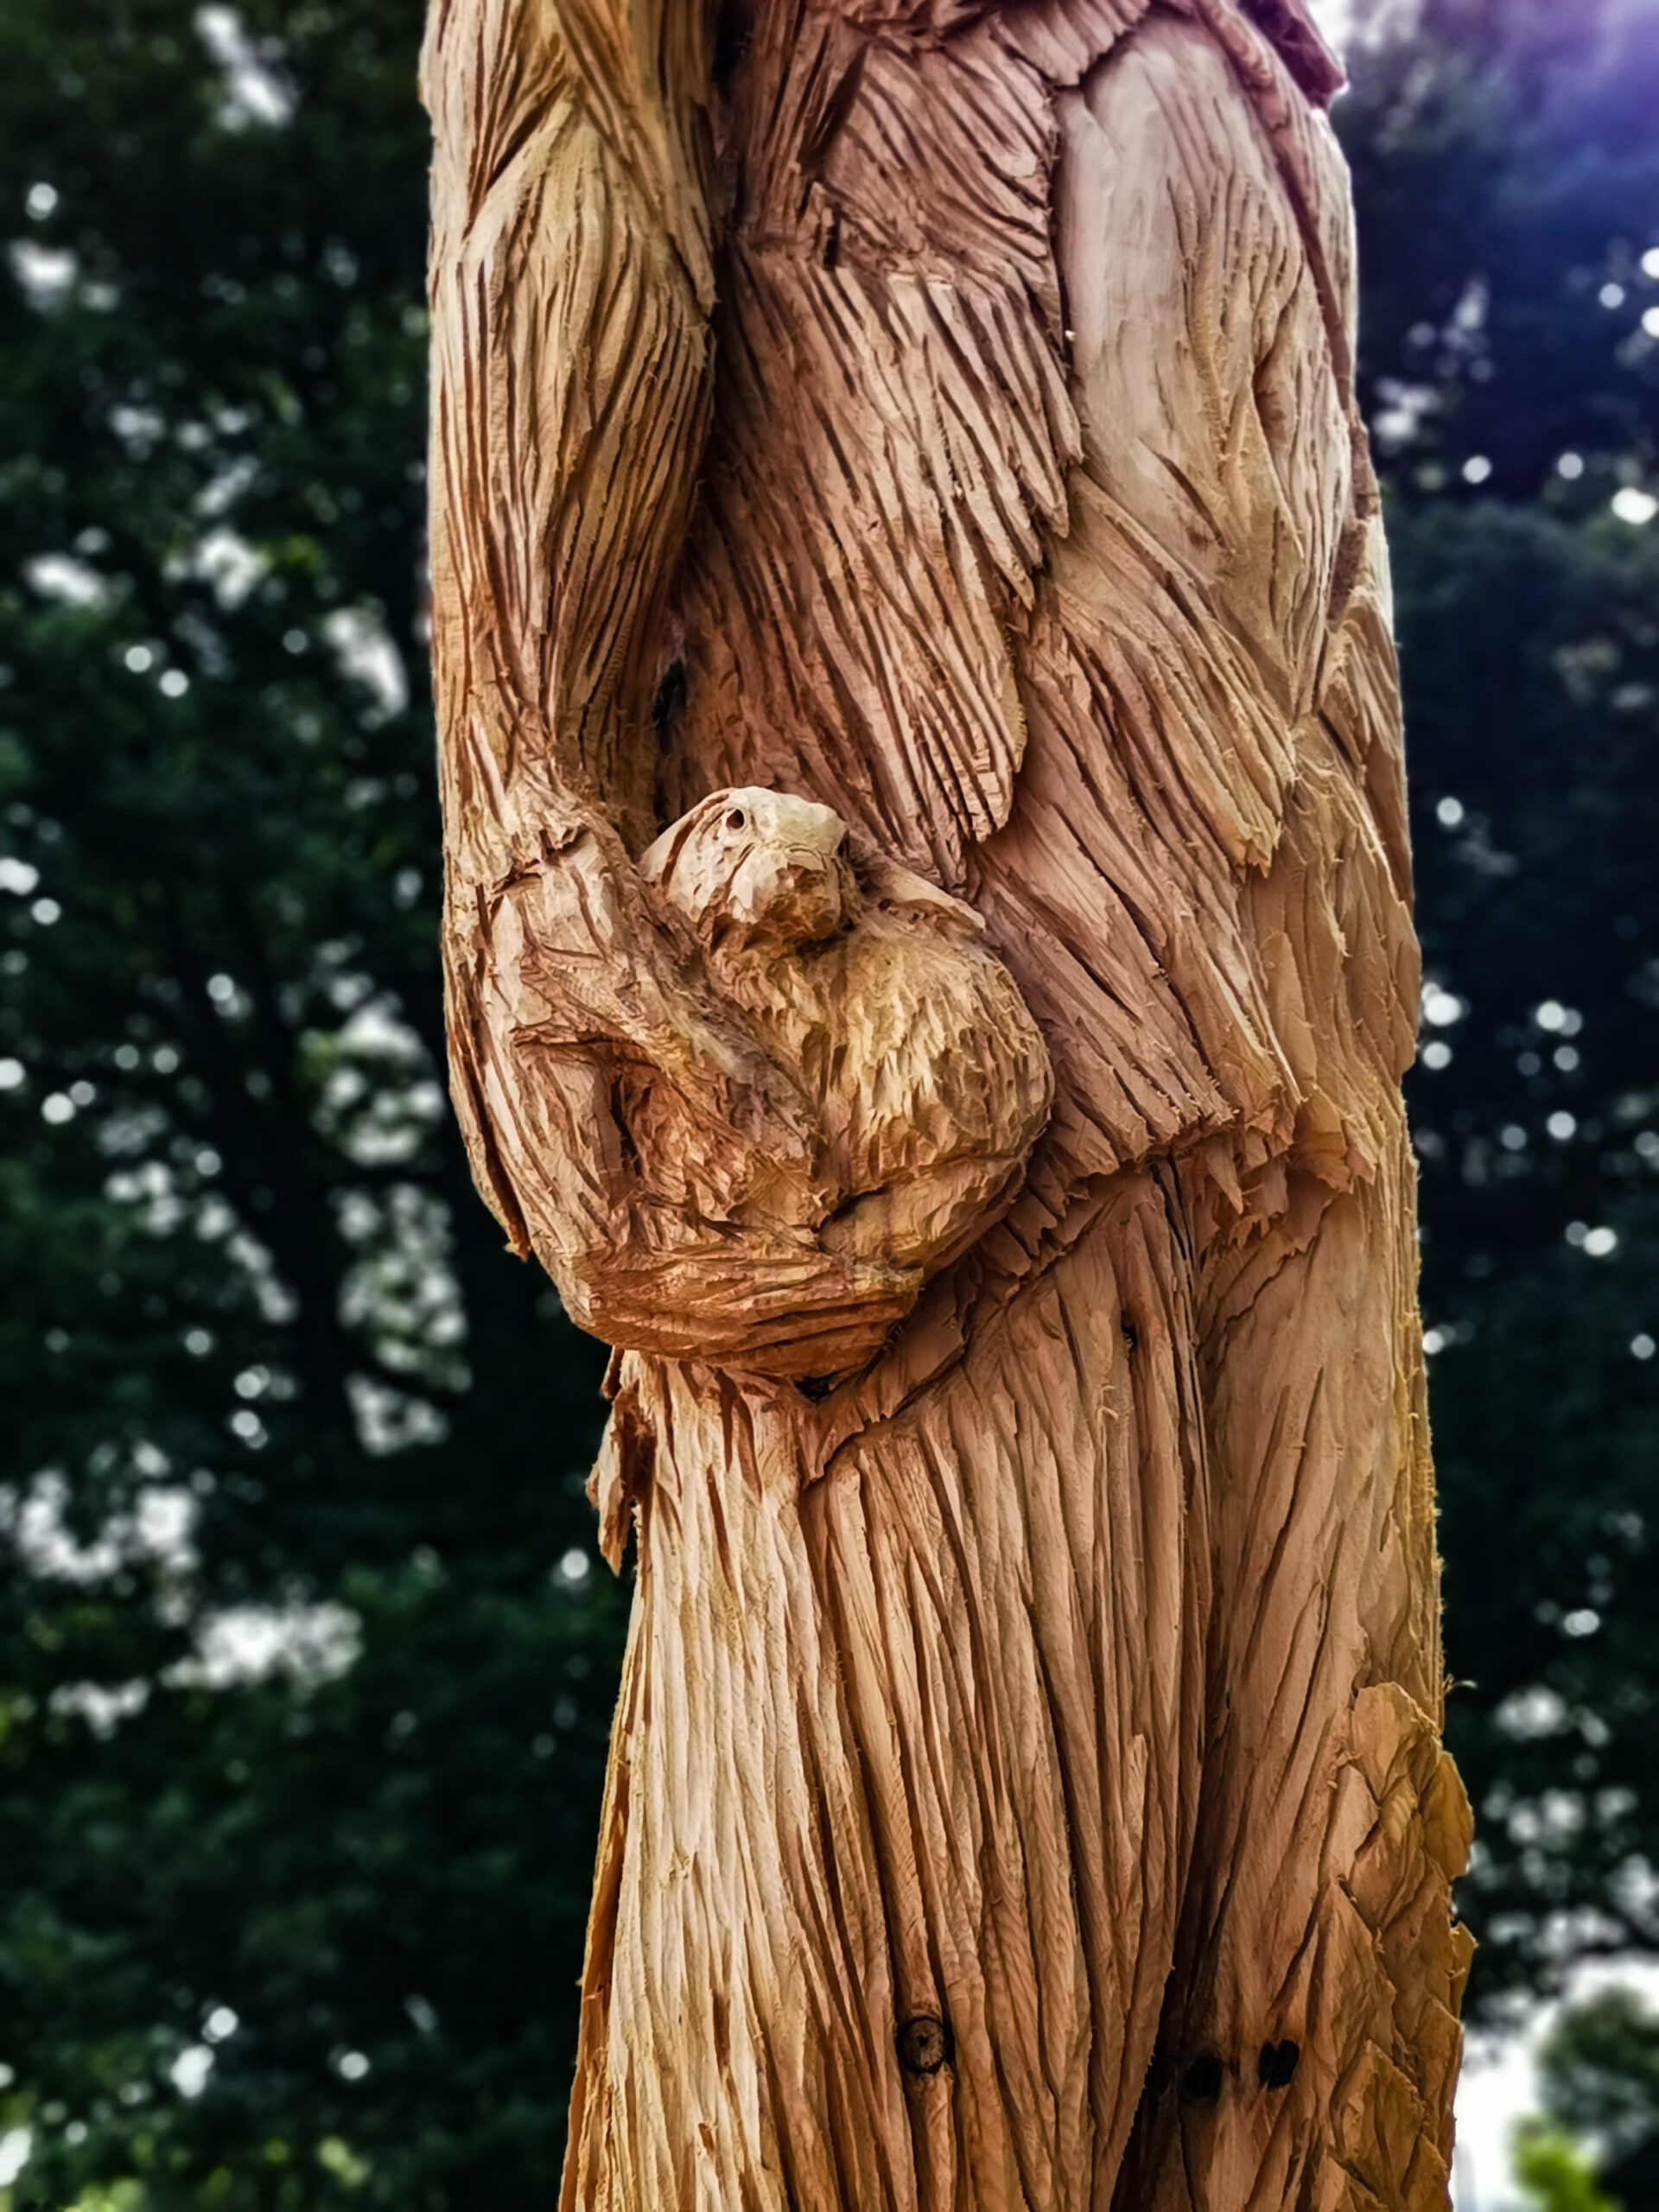 close up of the ent tree sculpture by simon o'rourke, focusing on the rabbit in its left hand